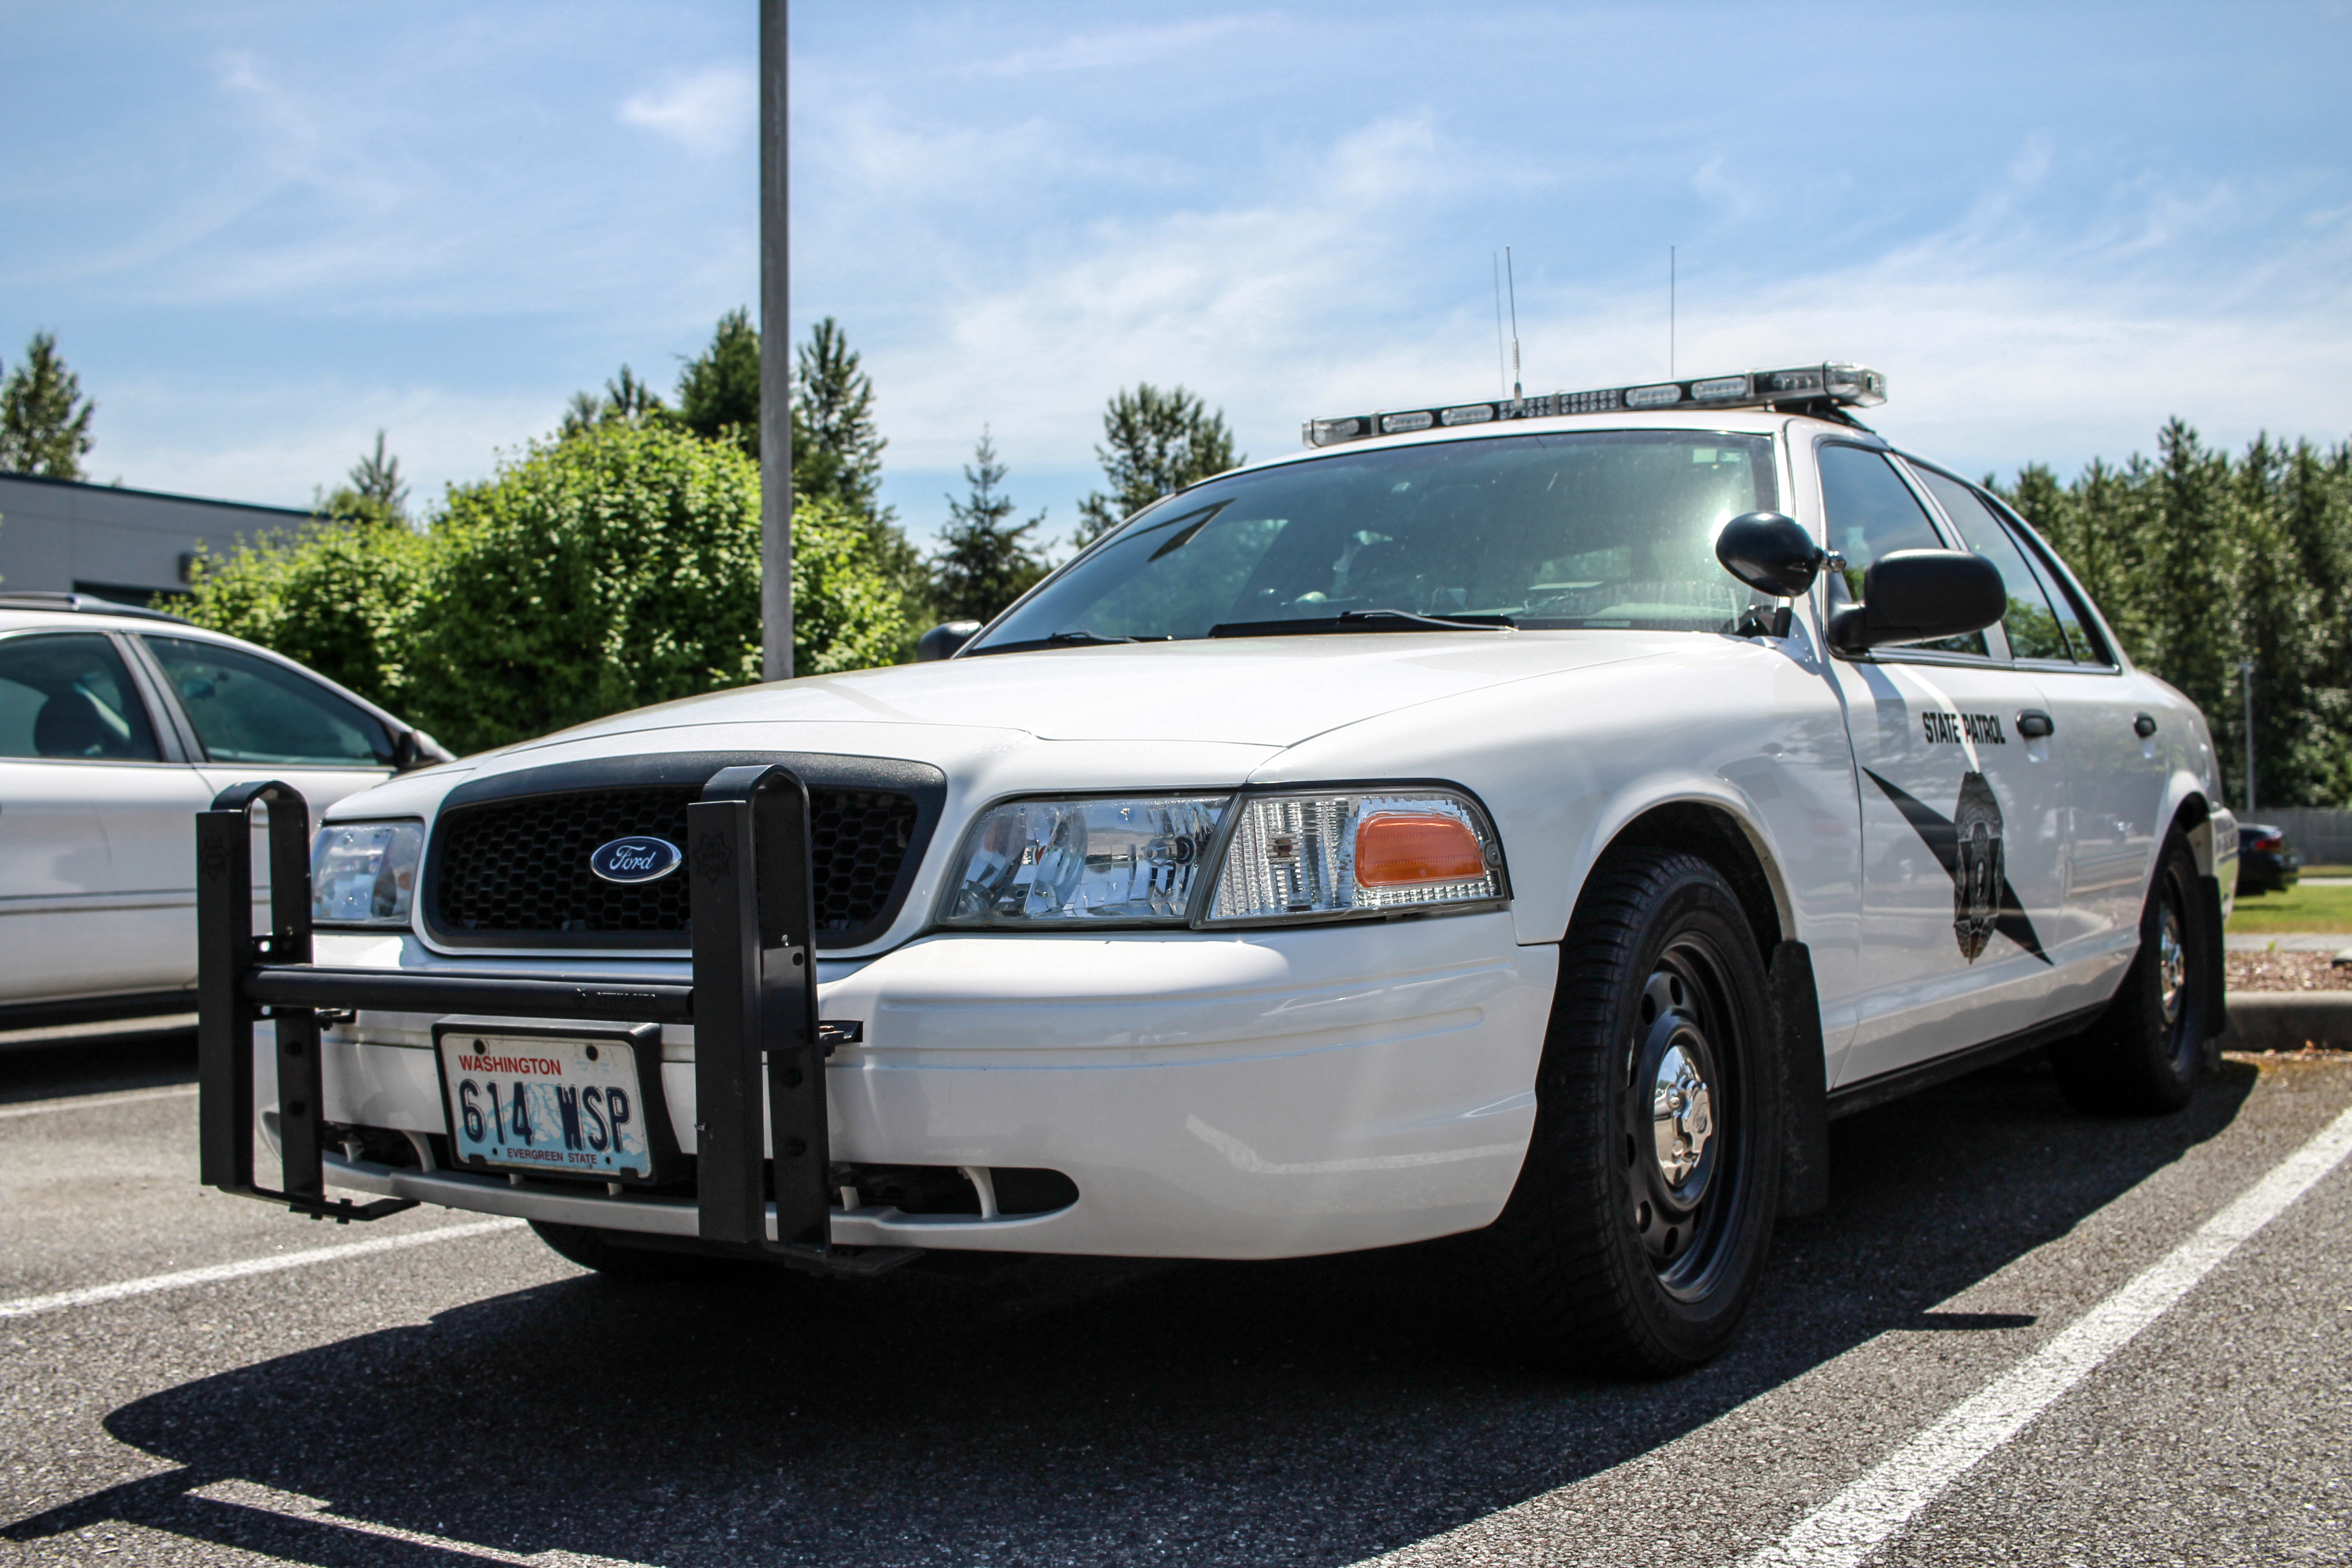 Washington State Patrol (614), Car, Outdoor, Police, Police car, HQ Photo